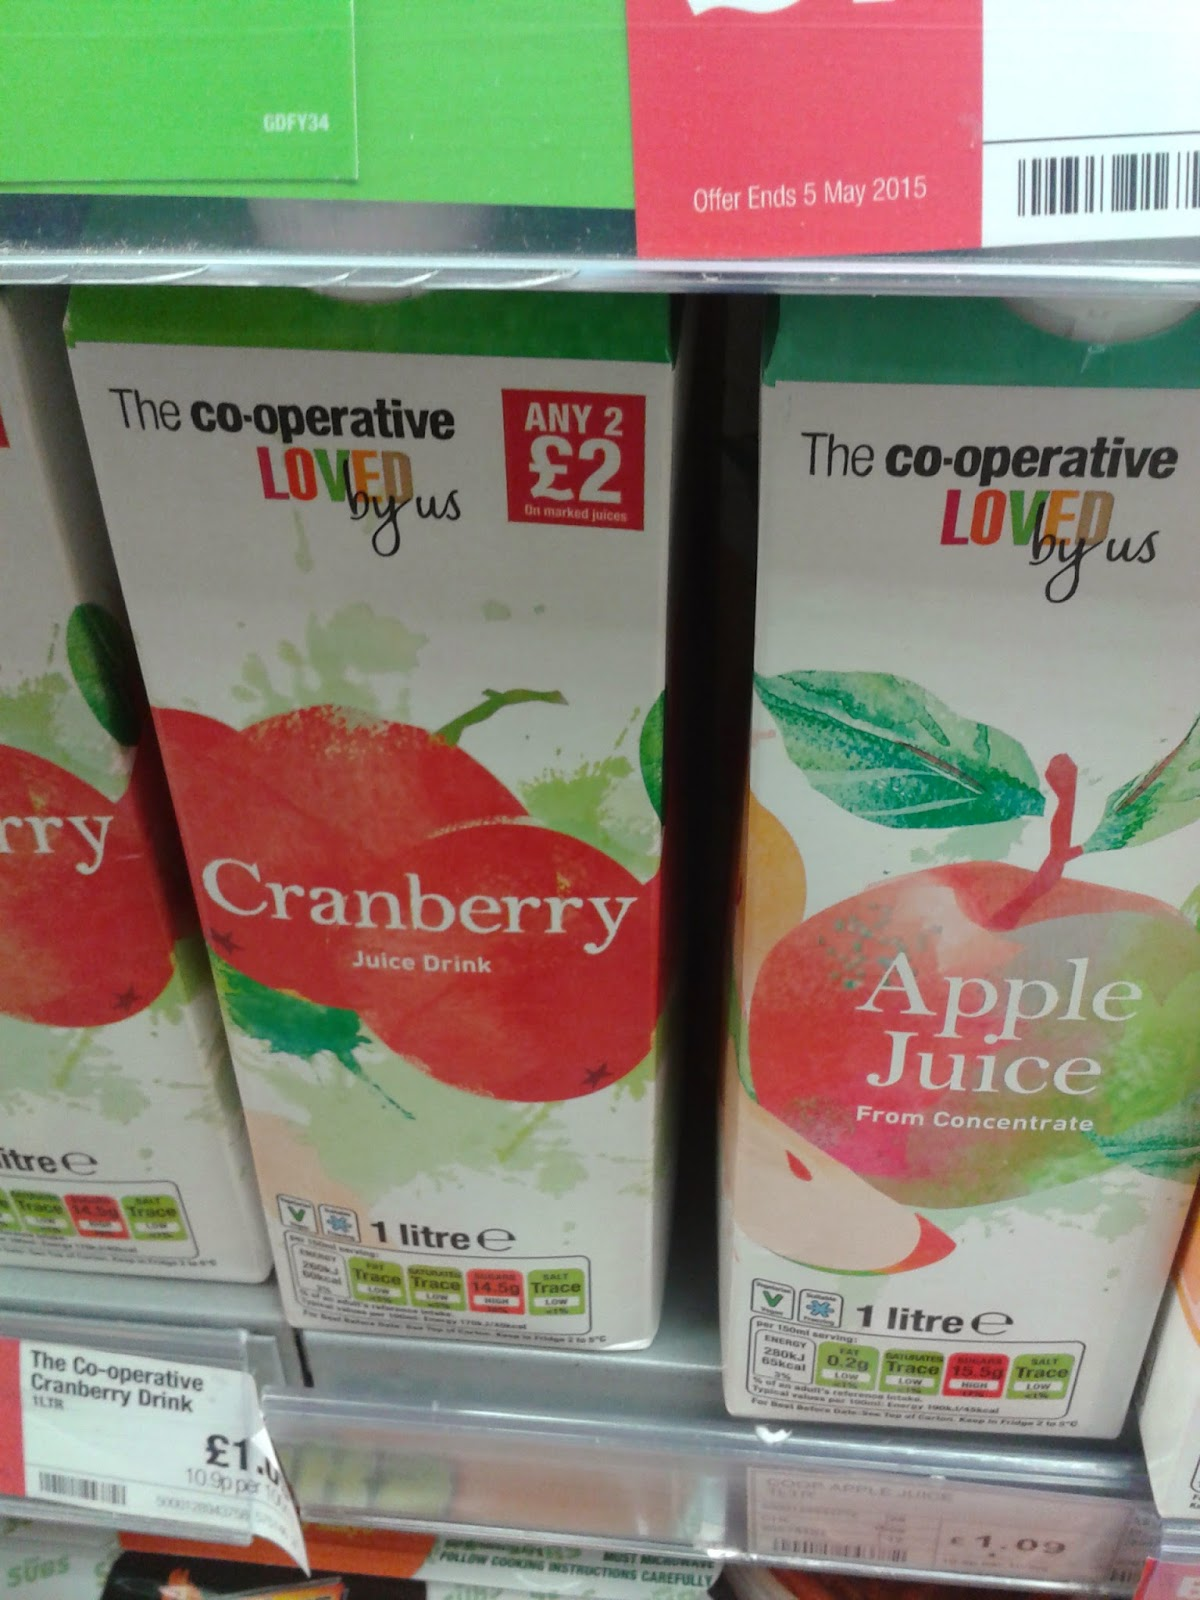 Cranberry juice drink and Apple juice